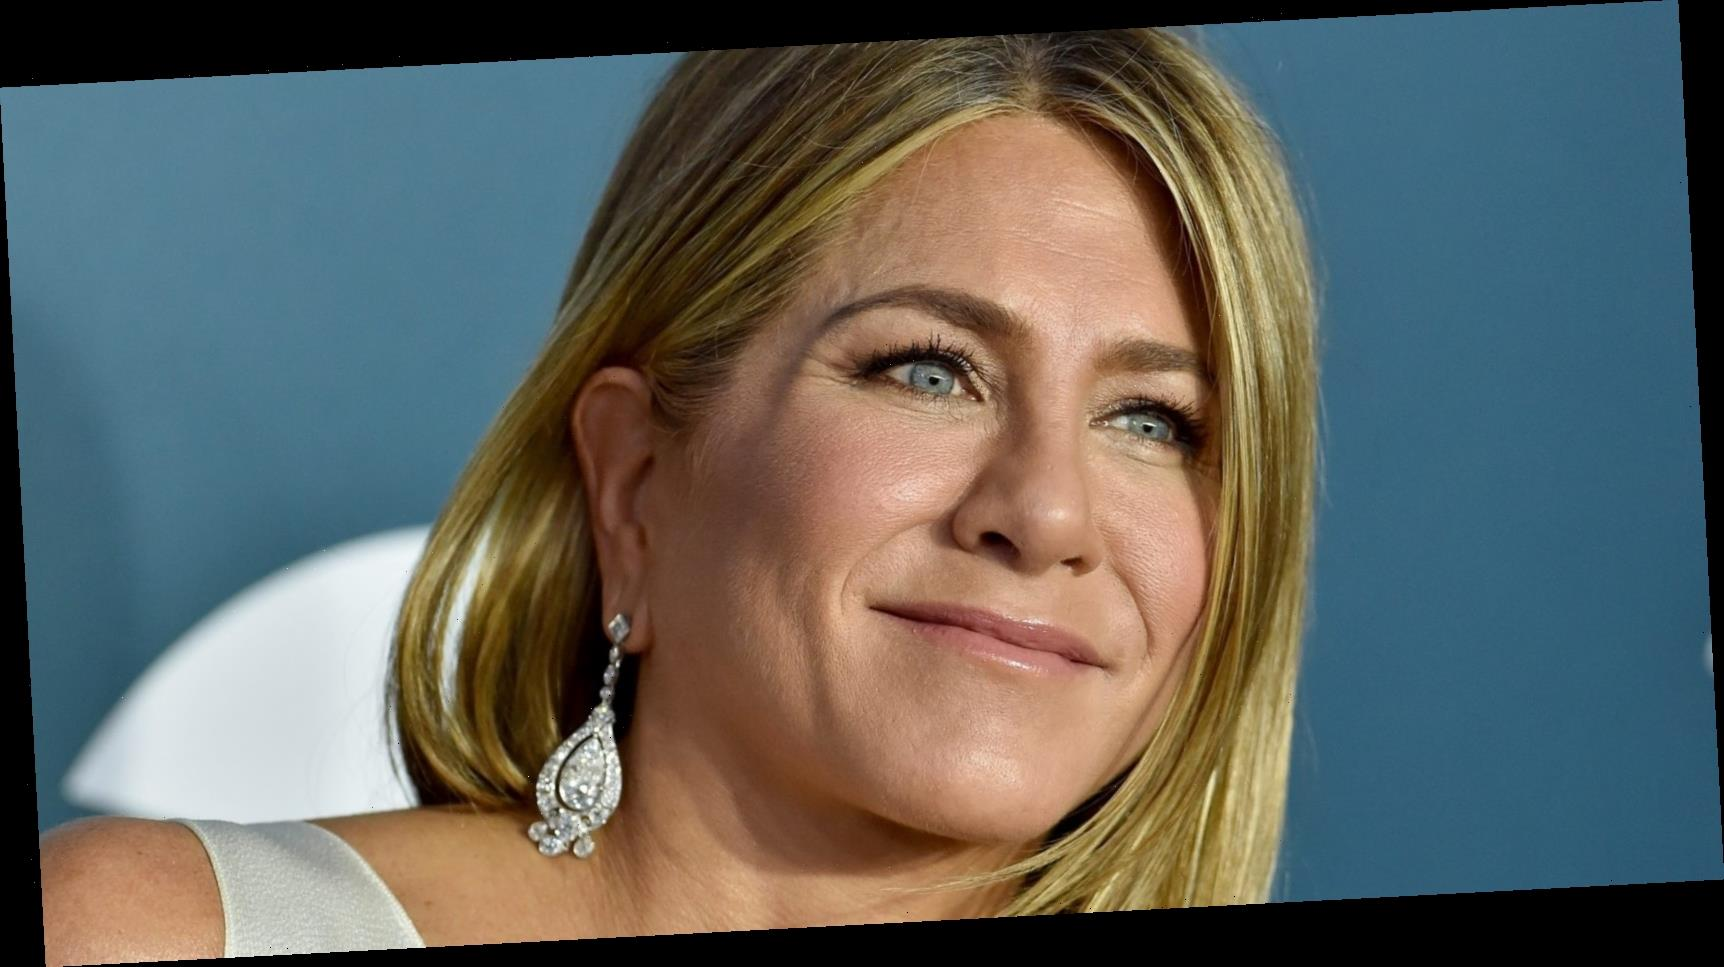 Jennifer Aniston's 'holding hands' photo is symbolic of the industry's sisterhood